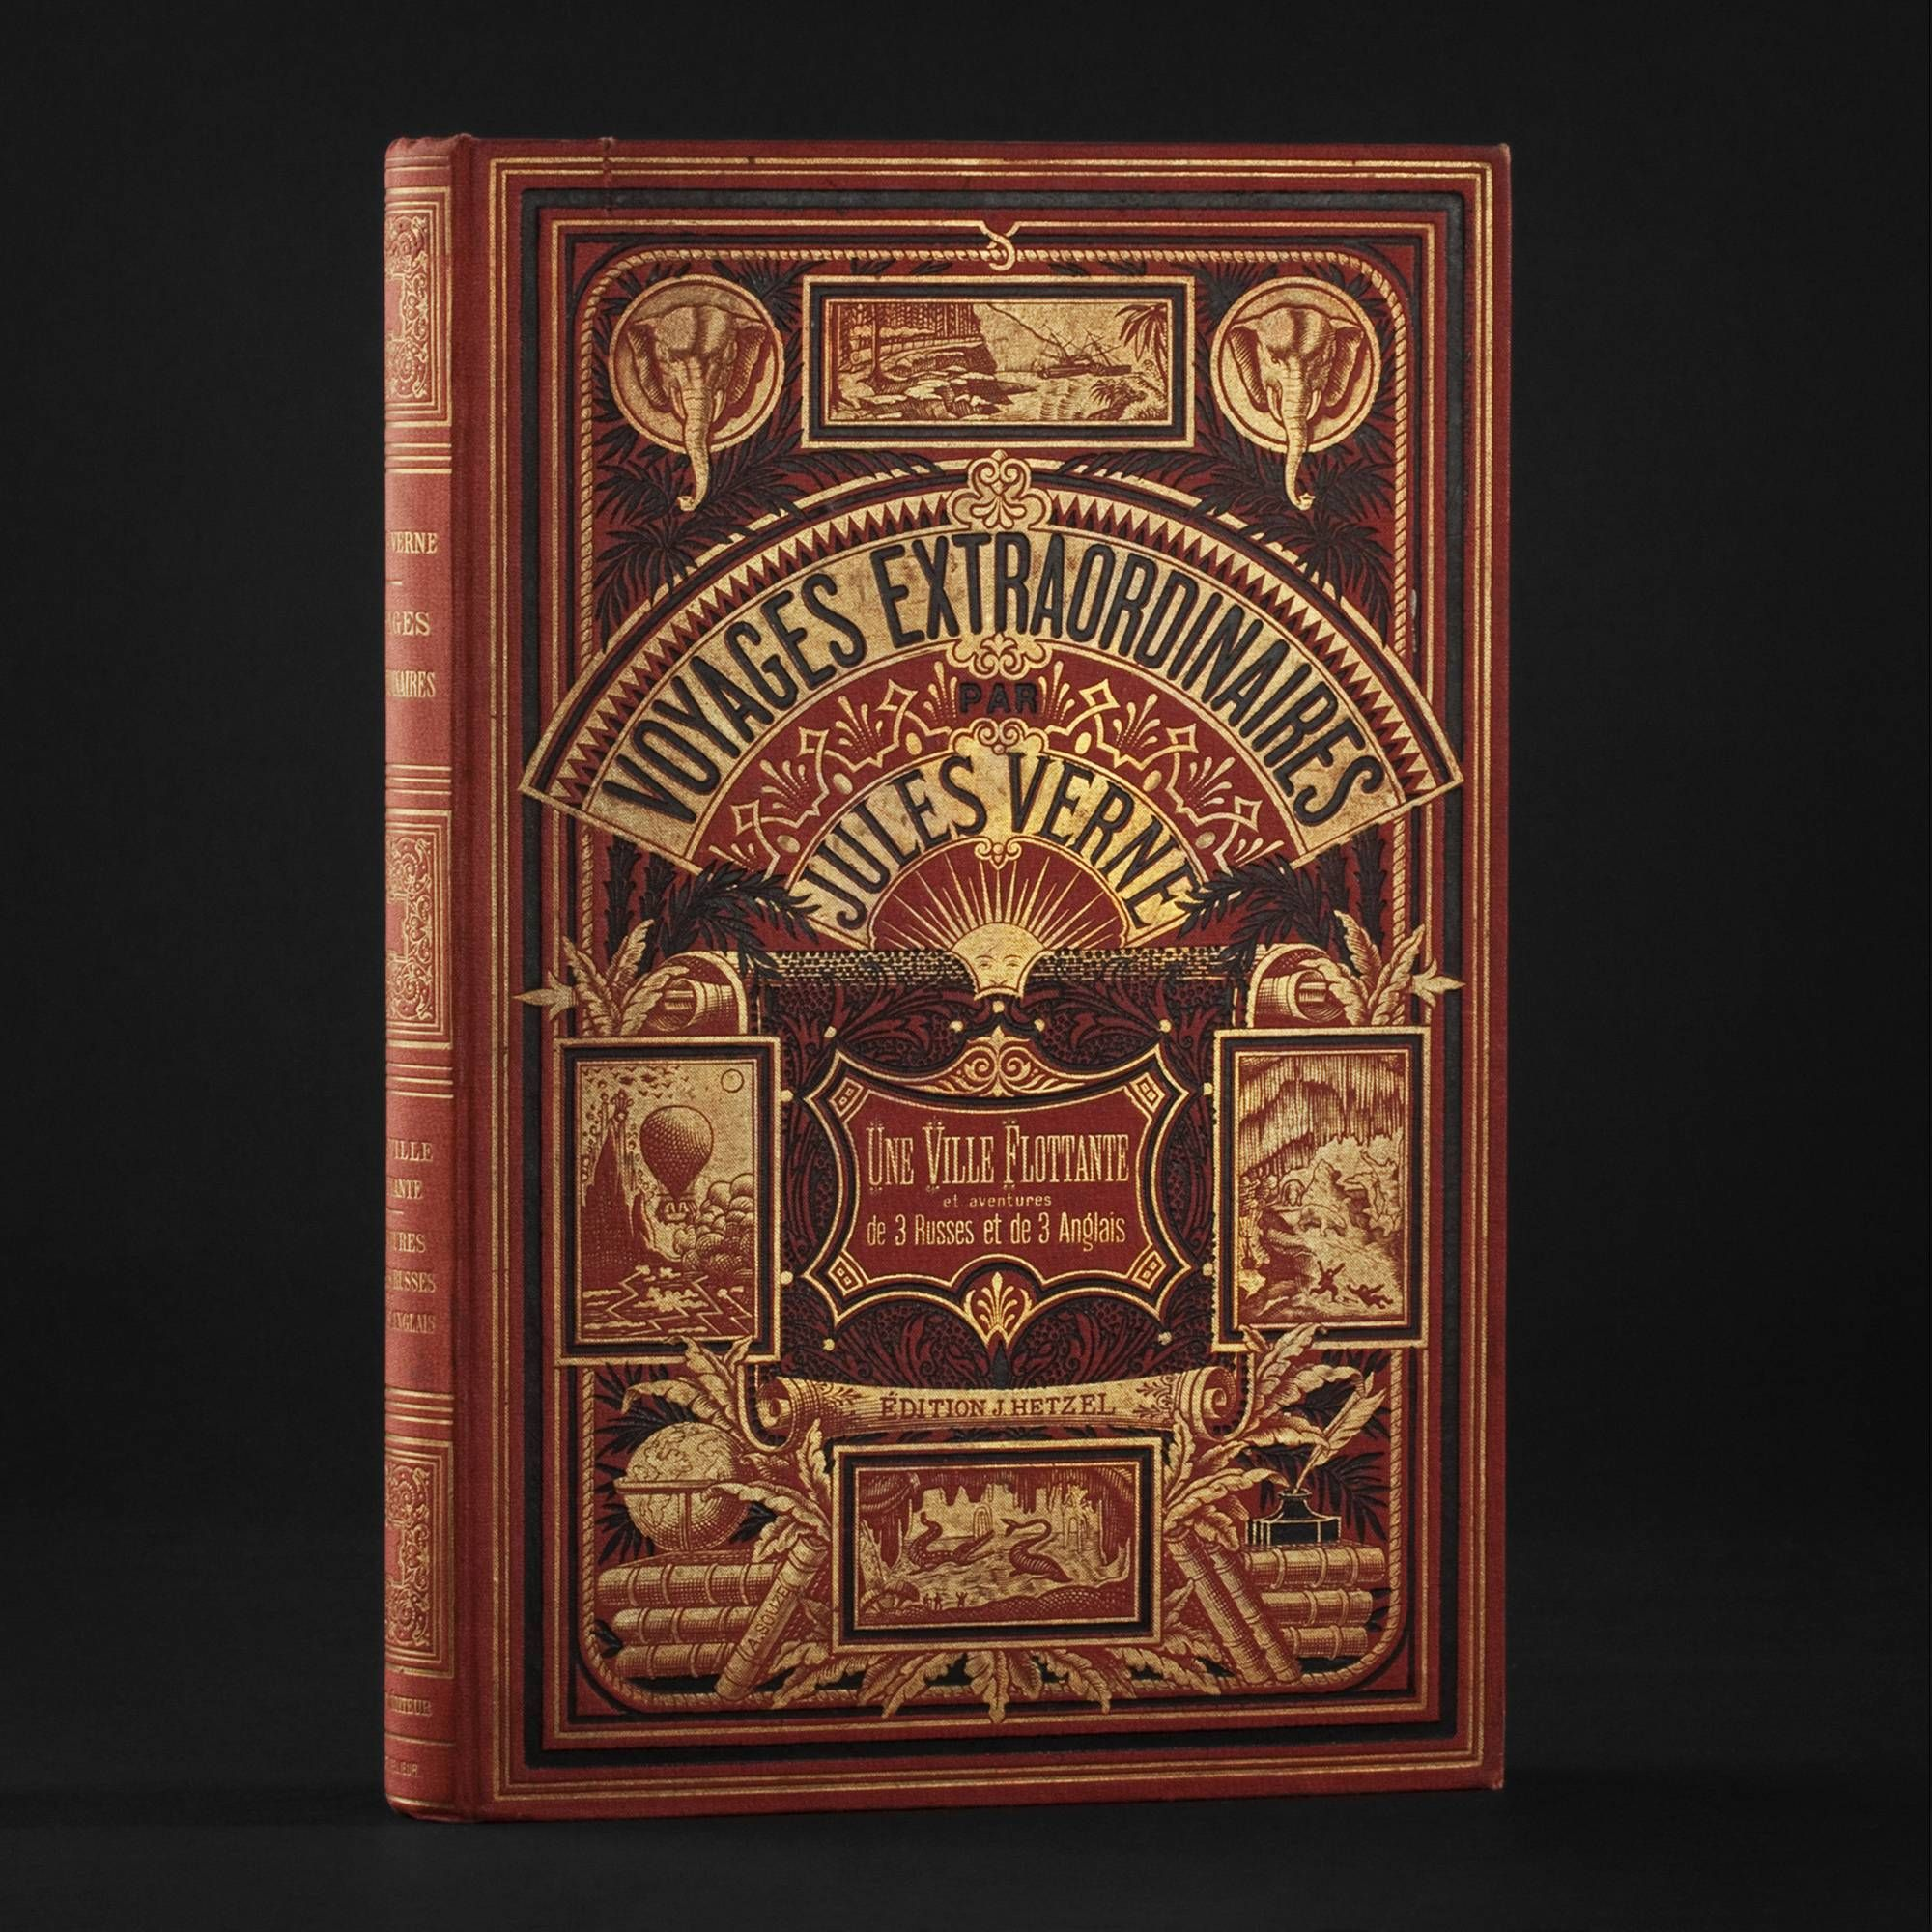 There S Something So Awesome About This 150 Yr Old Book Cover Design Imgur Book Cover Art Book Cover Design Vintage Book Covers